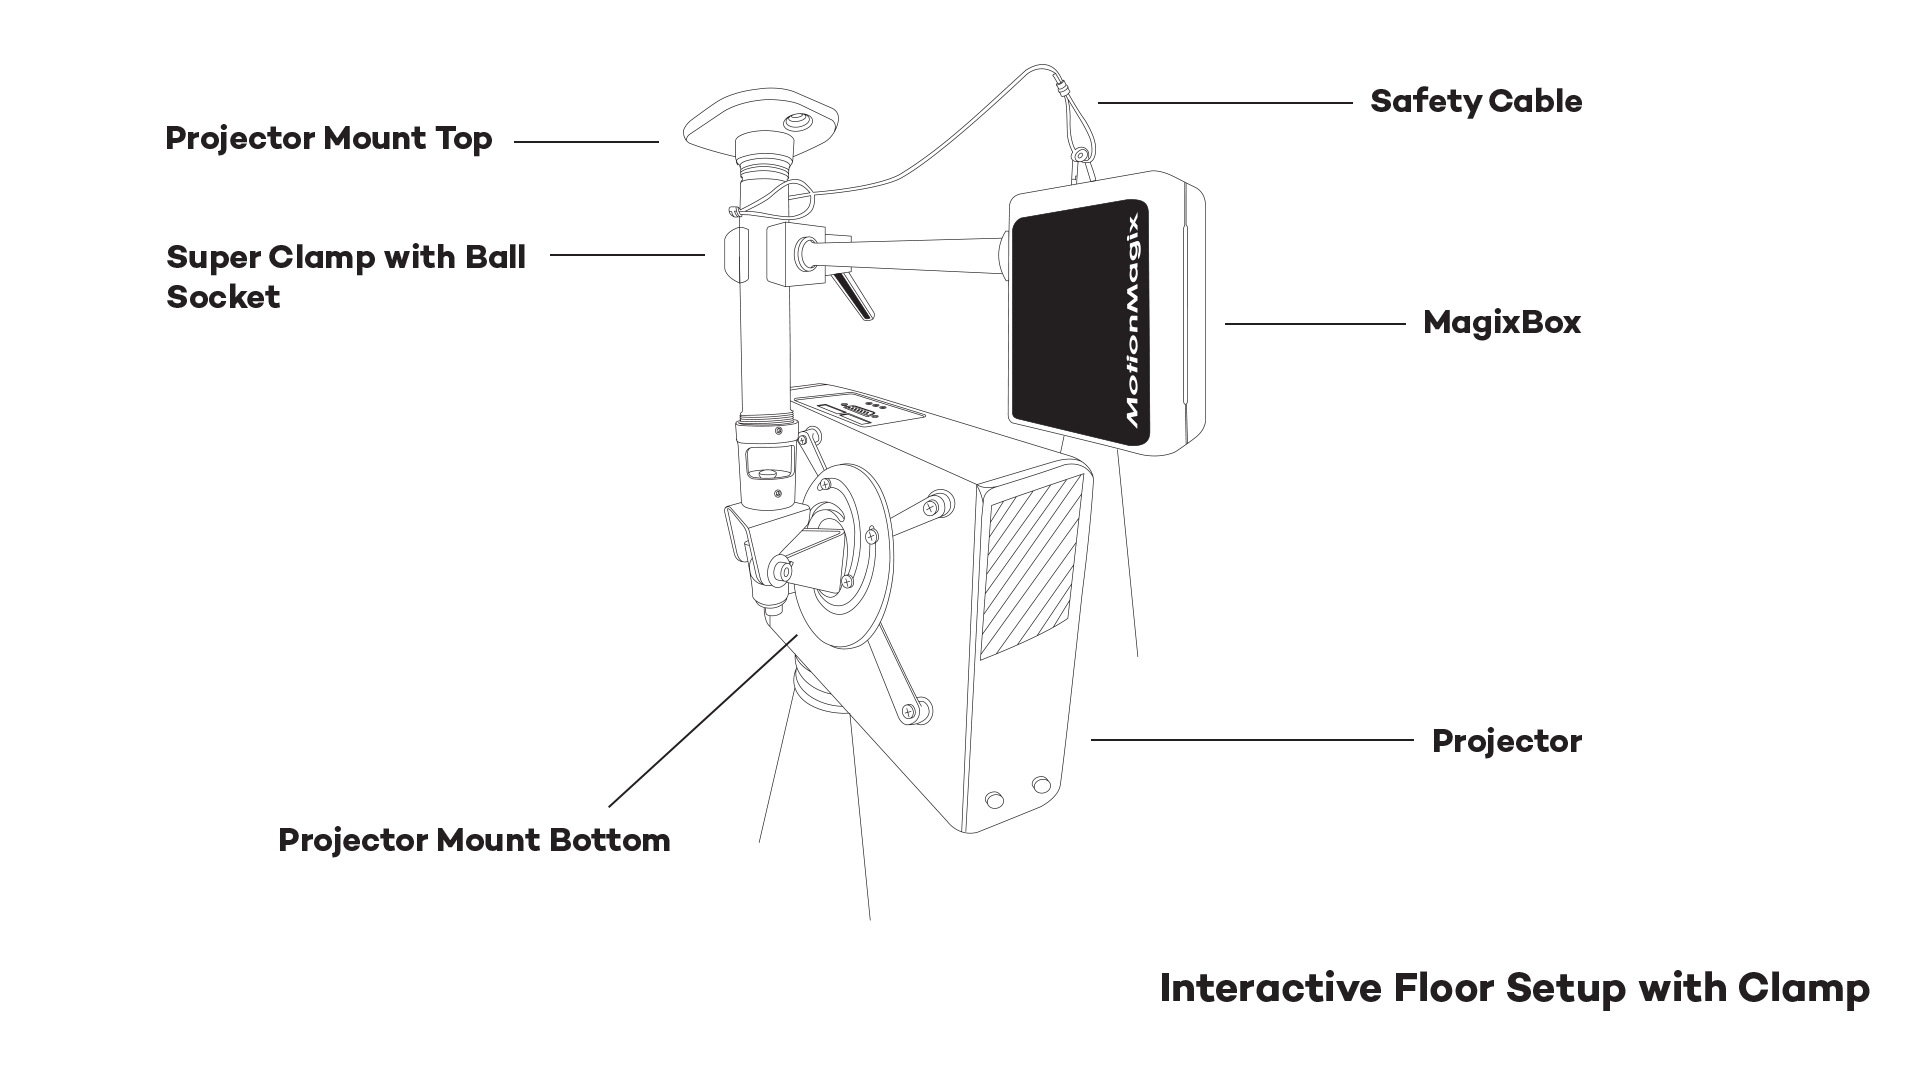 Motionmagix Box Interactive Projection System